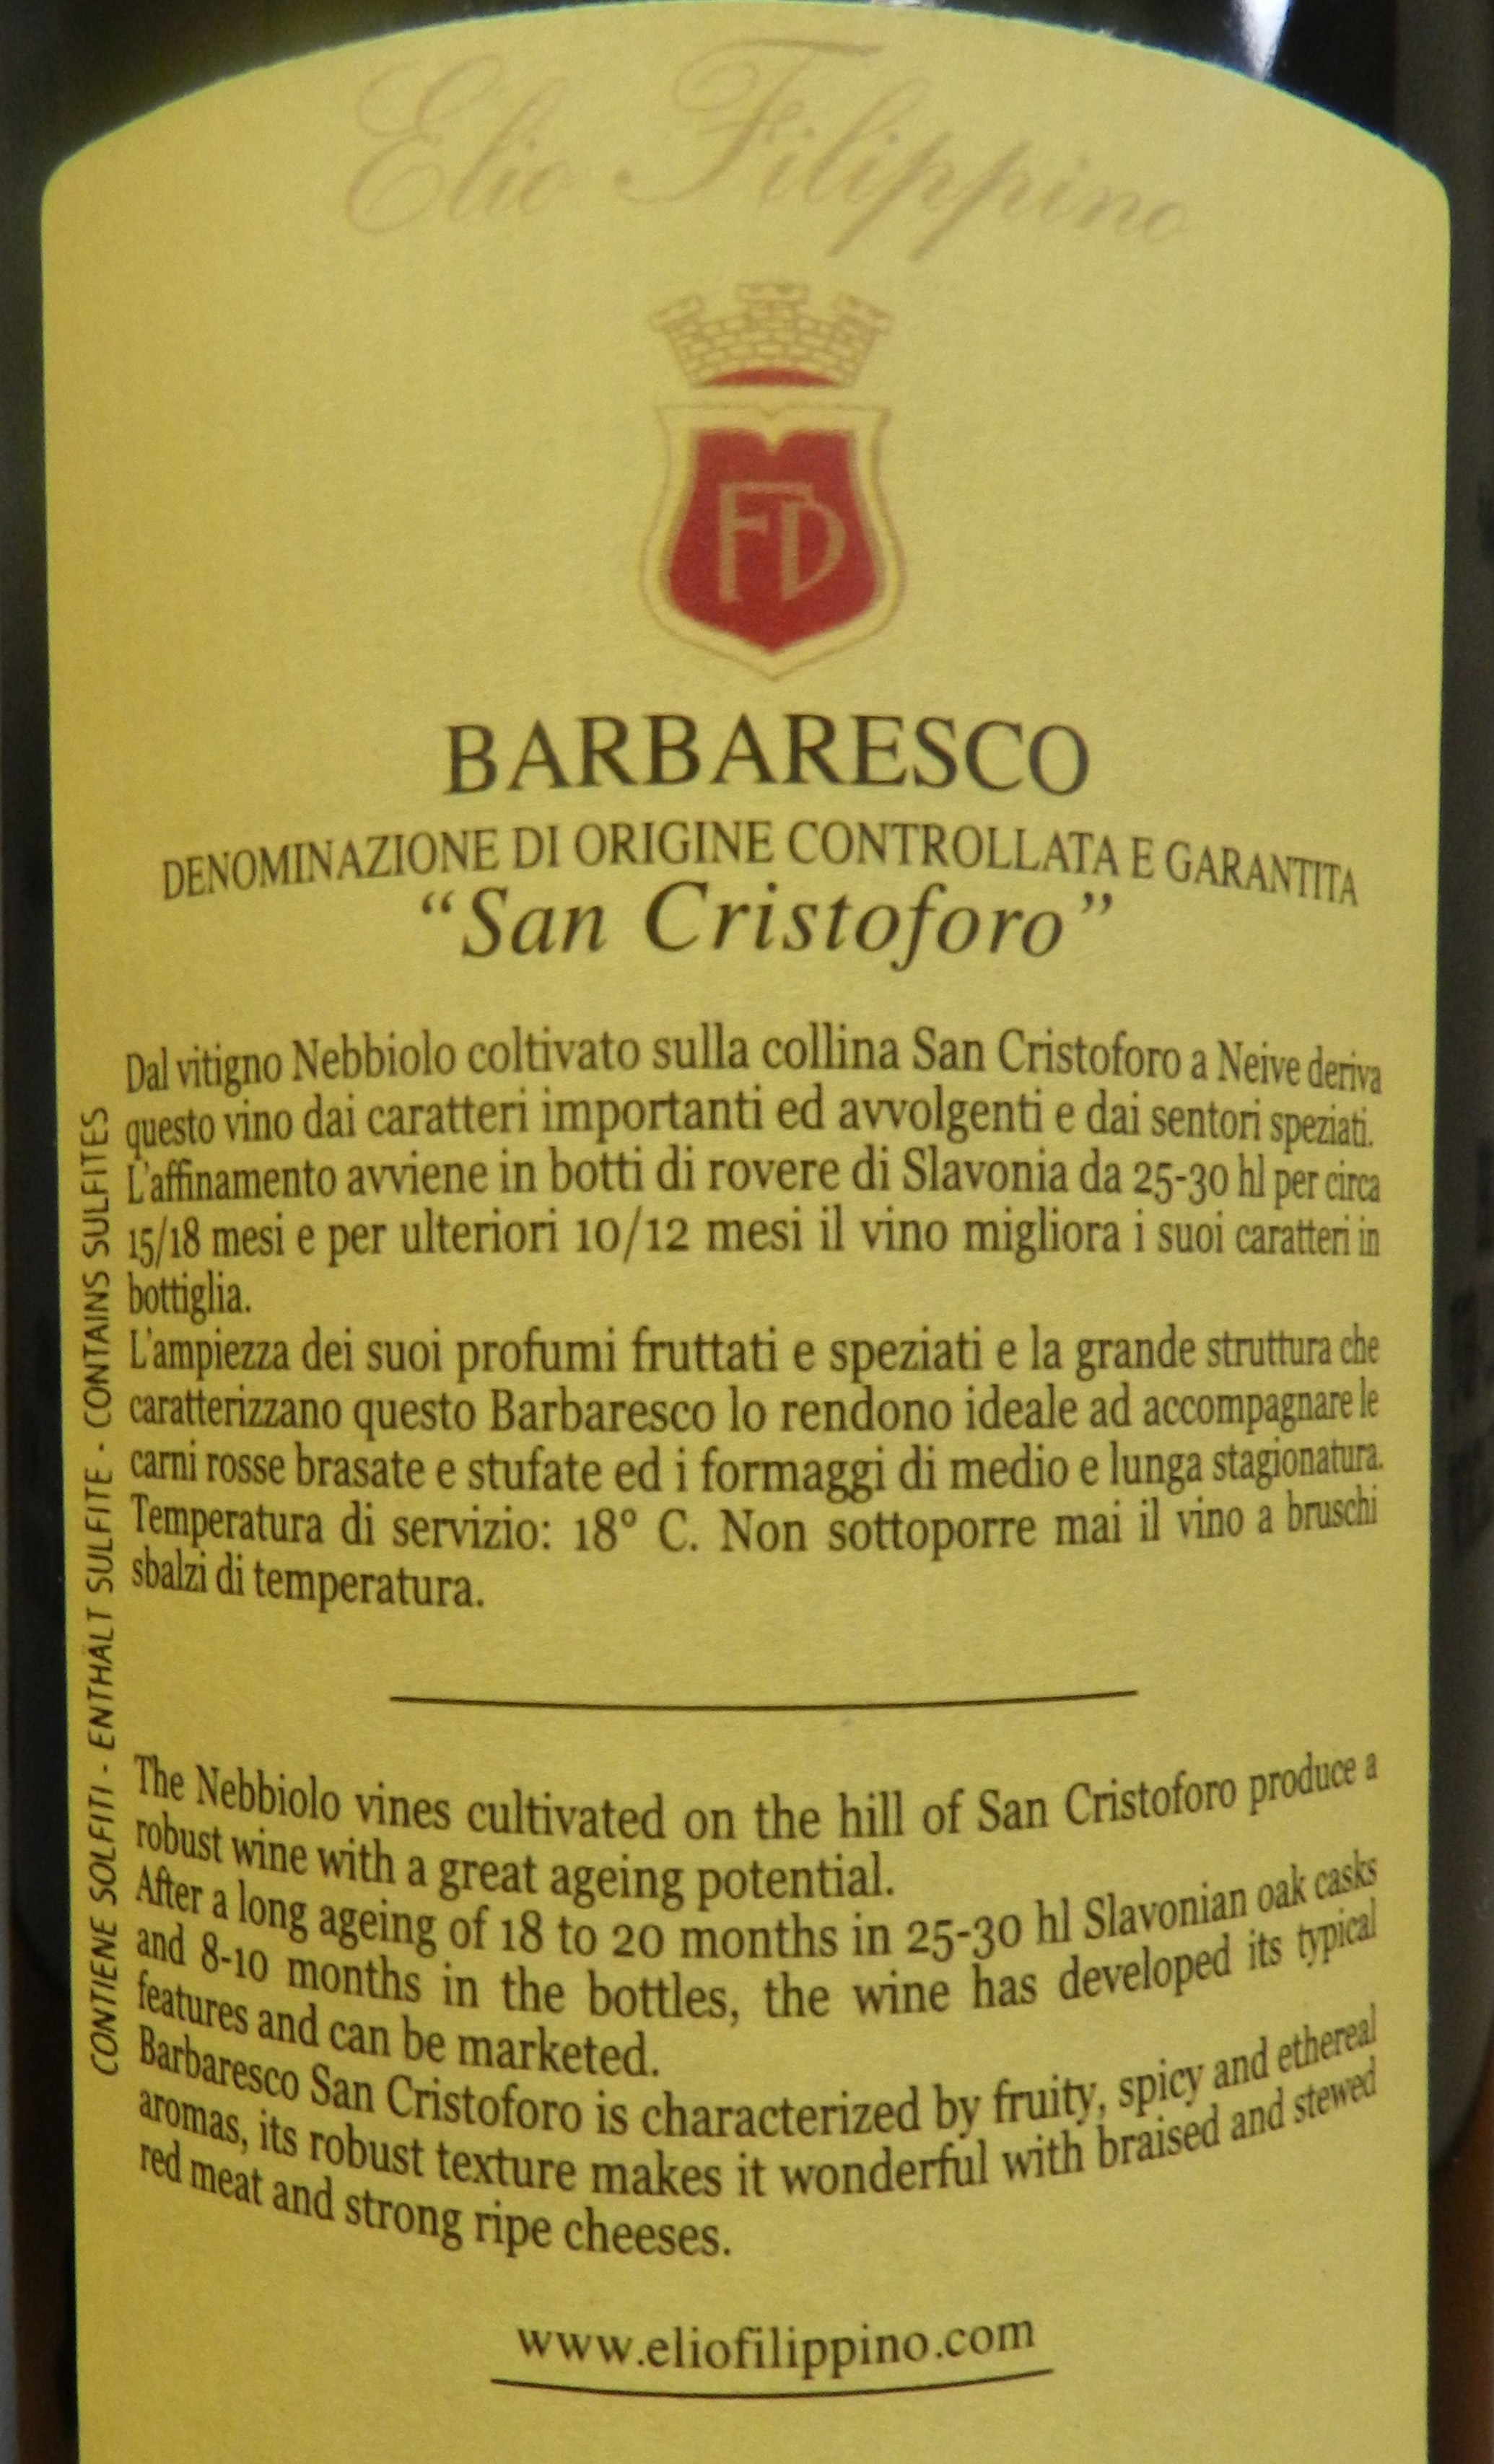 Barbaresco San Cristoforo Filippino label